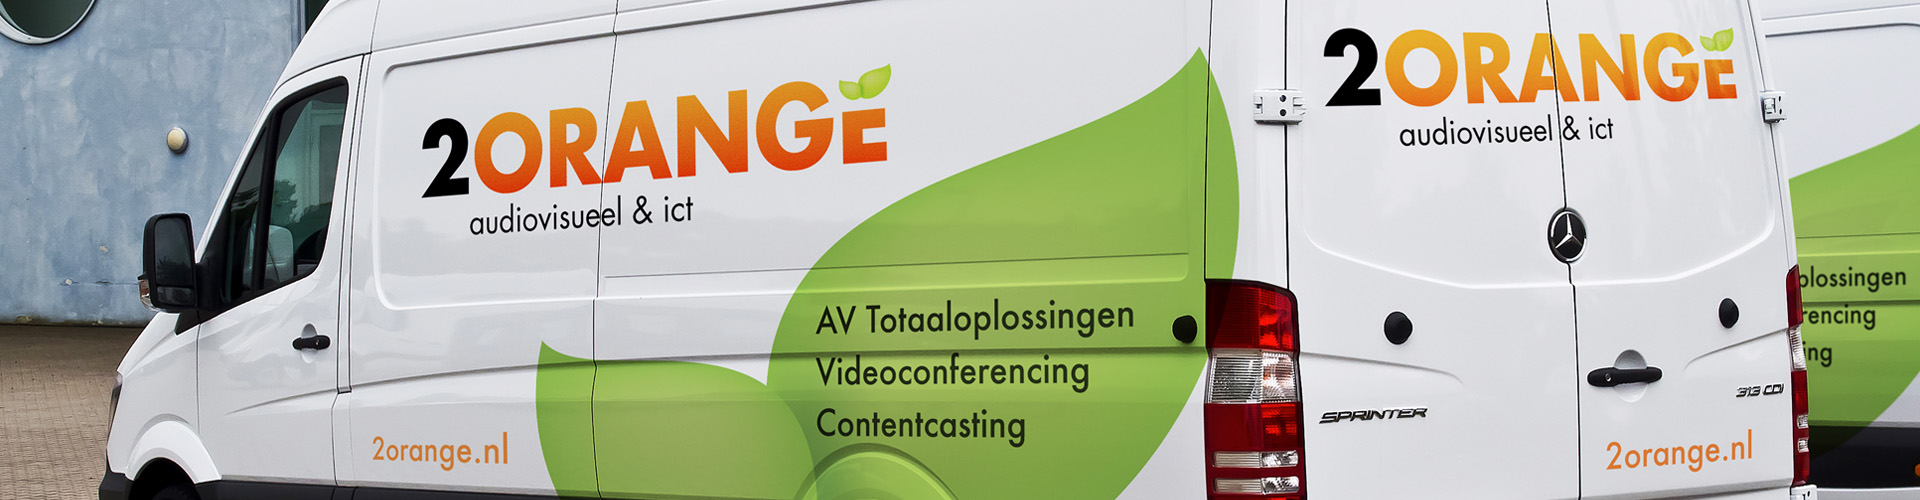 2Orange - audiovisuele en ict installaties